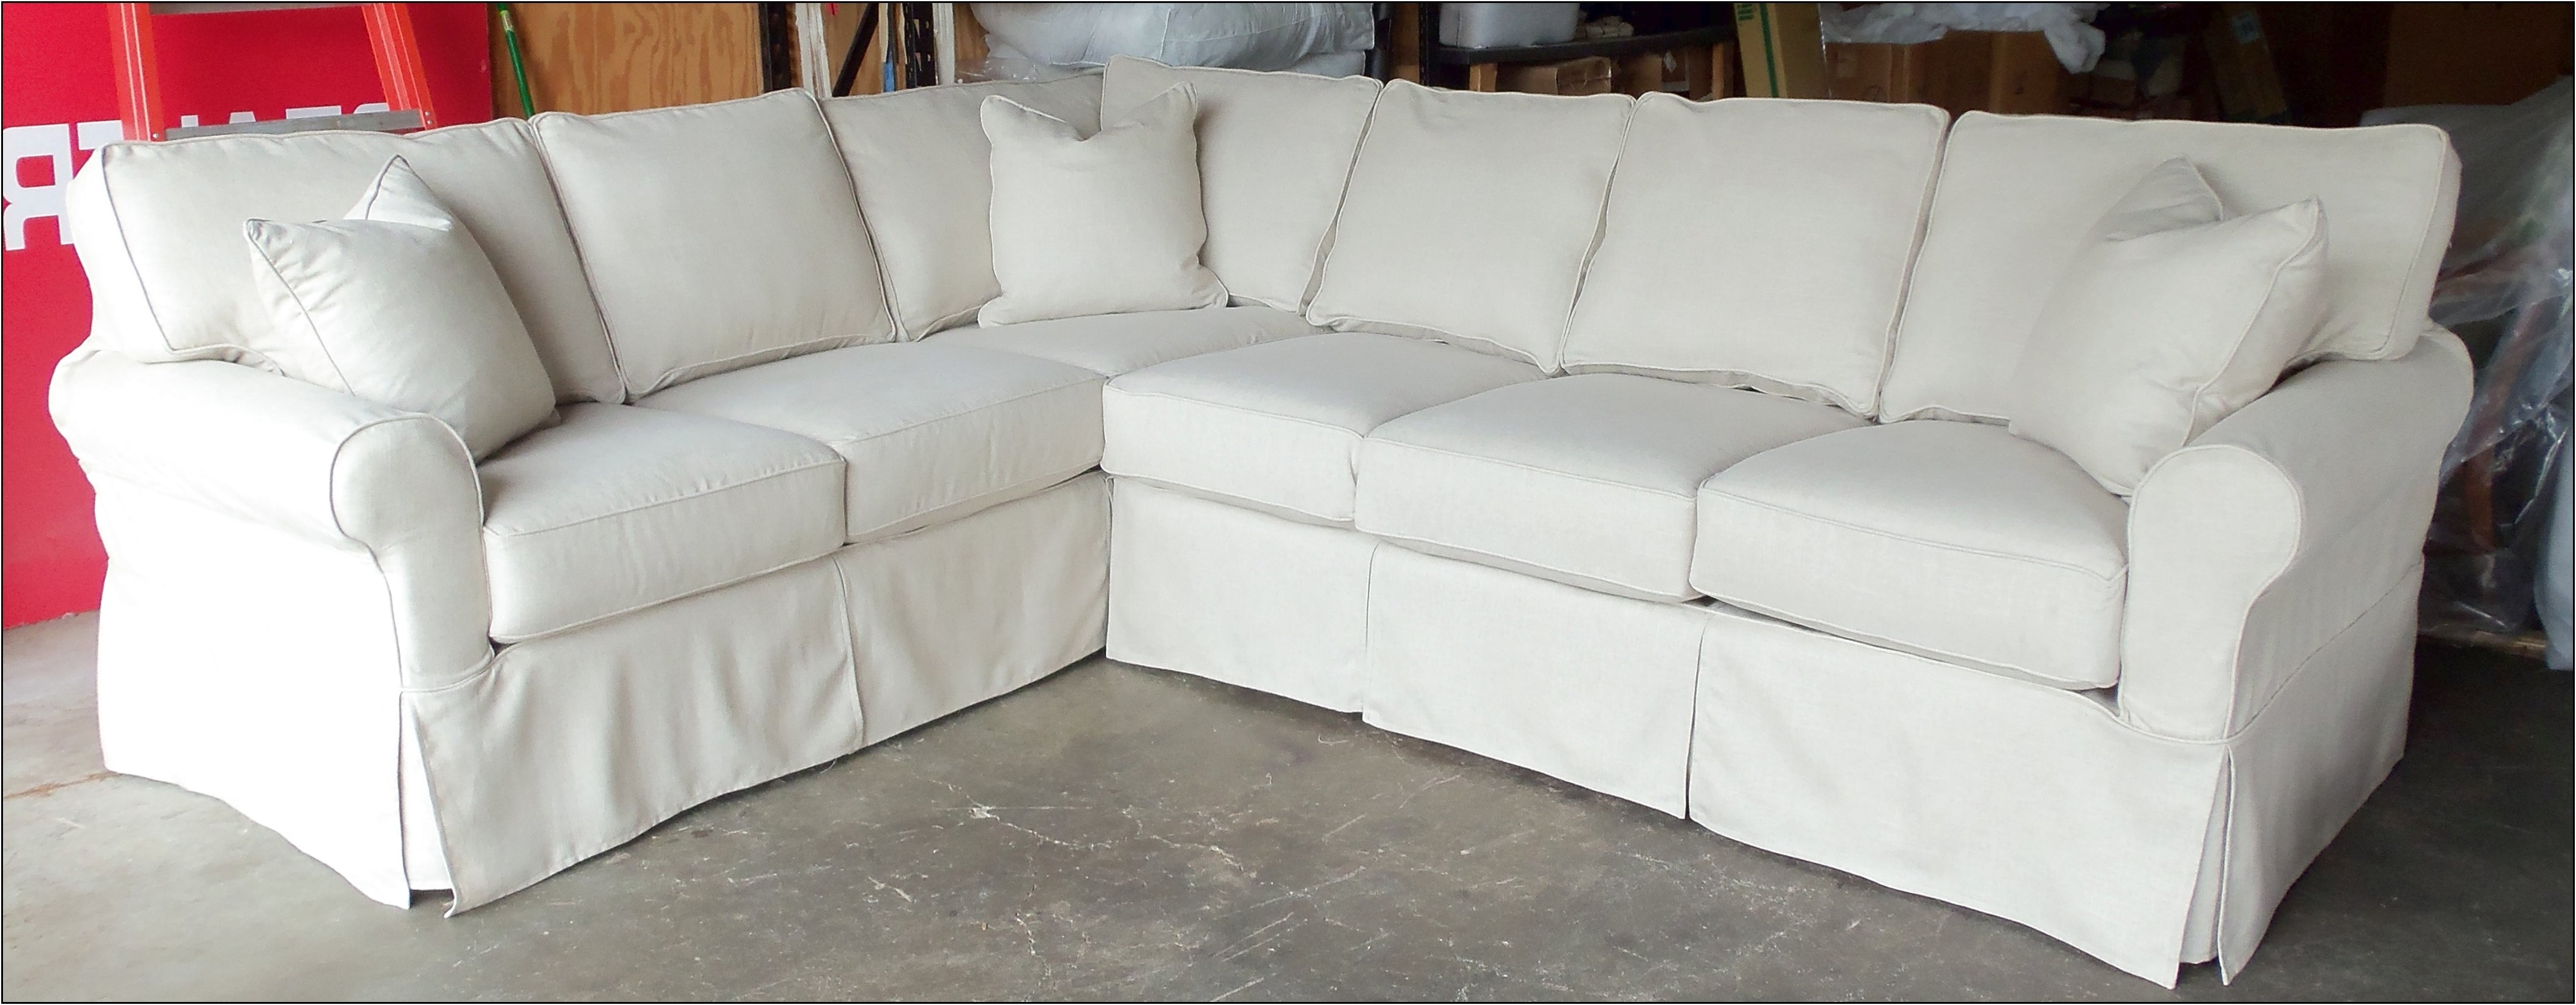 Best Of Queen Sleeper Sectional Sofa Beautiful – Tatsuyoru Throughout 2019 Panama City Fl Sectional Sofas (View 3 of 20)